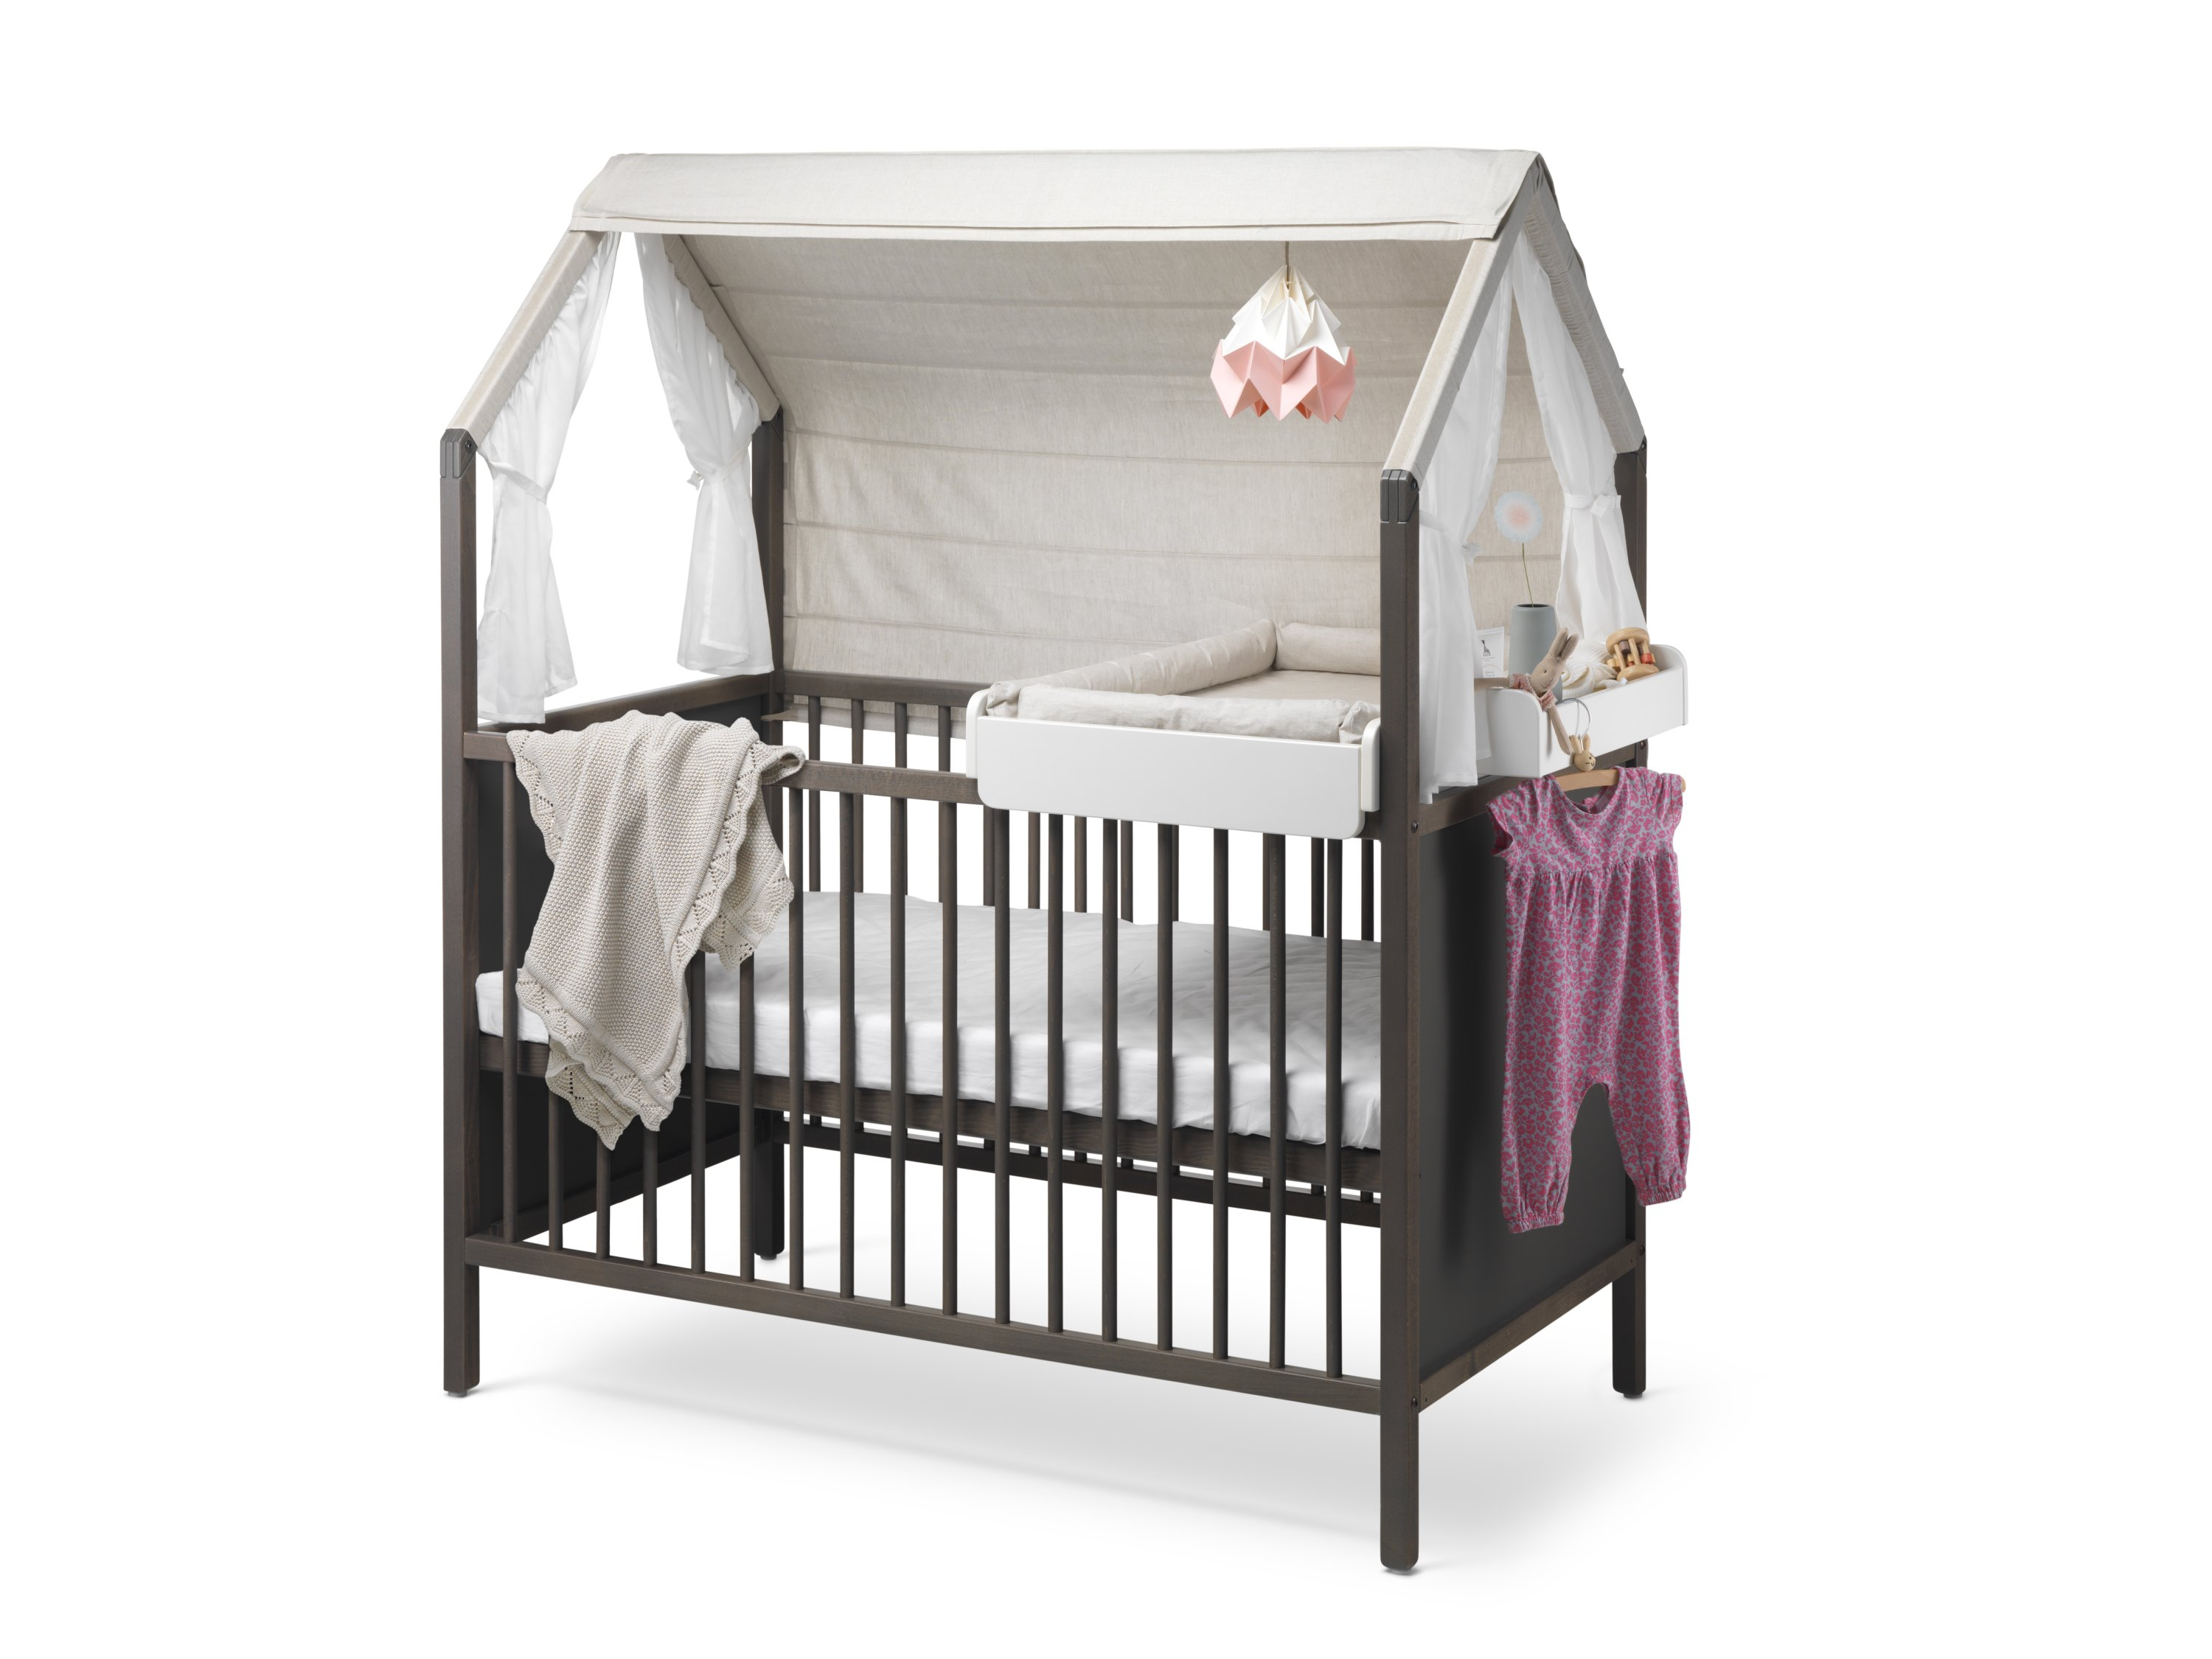 stokke bett grau pretababy pr t baby. Black Bedroom Furniture Sets. Home Design Ideas